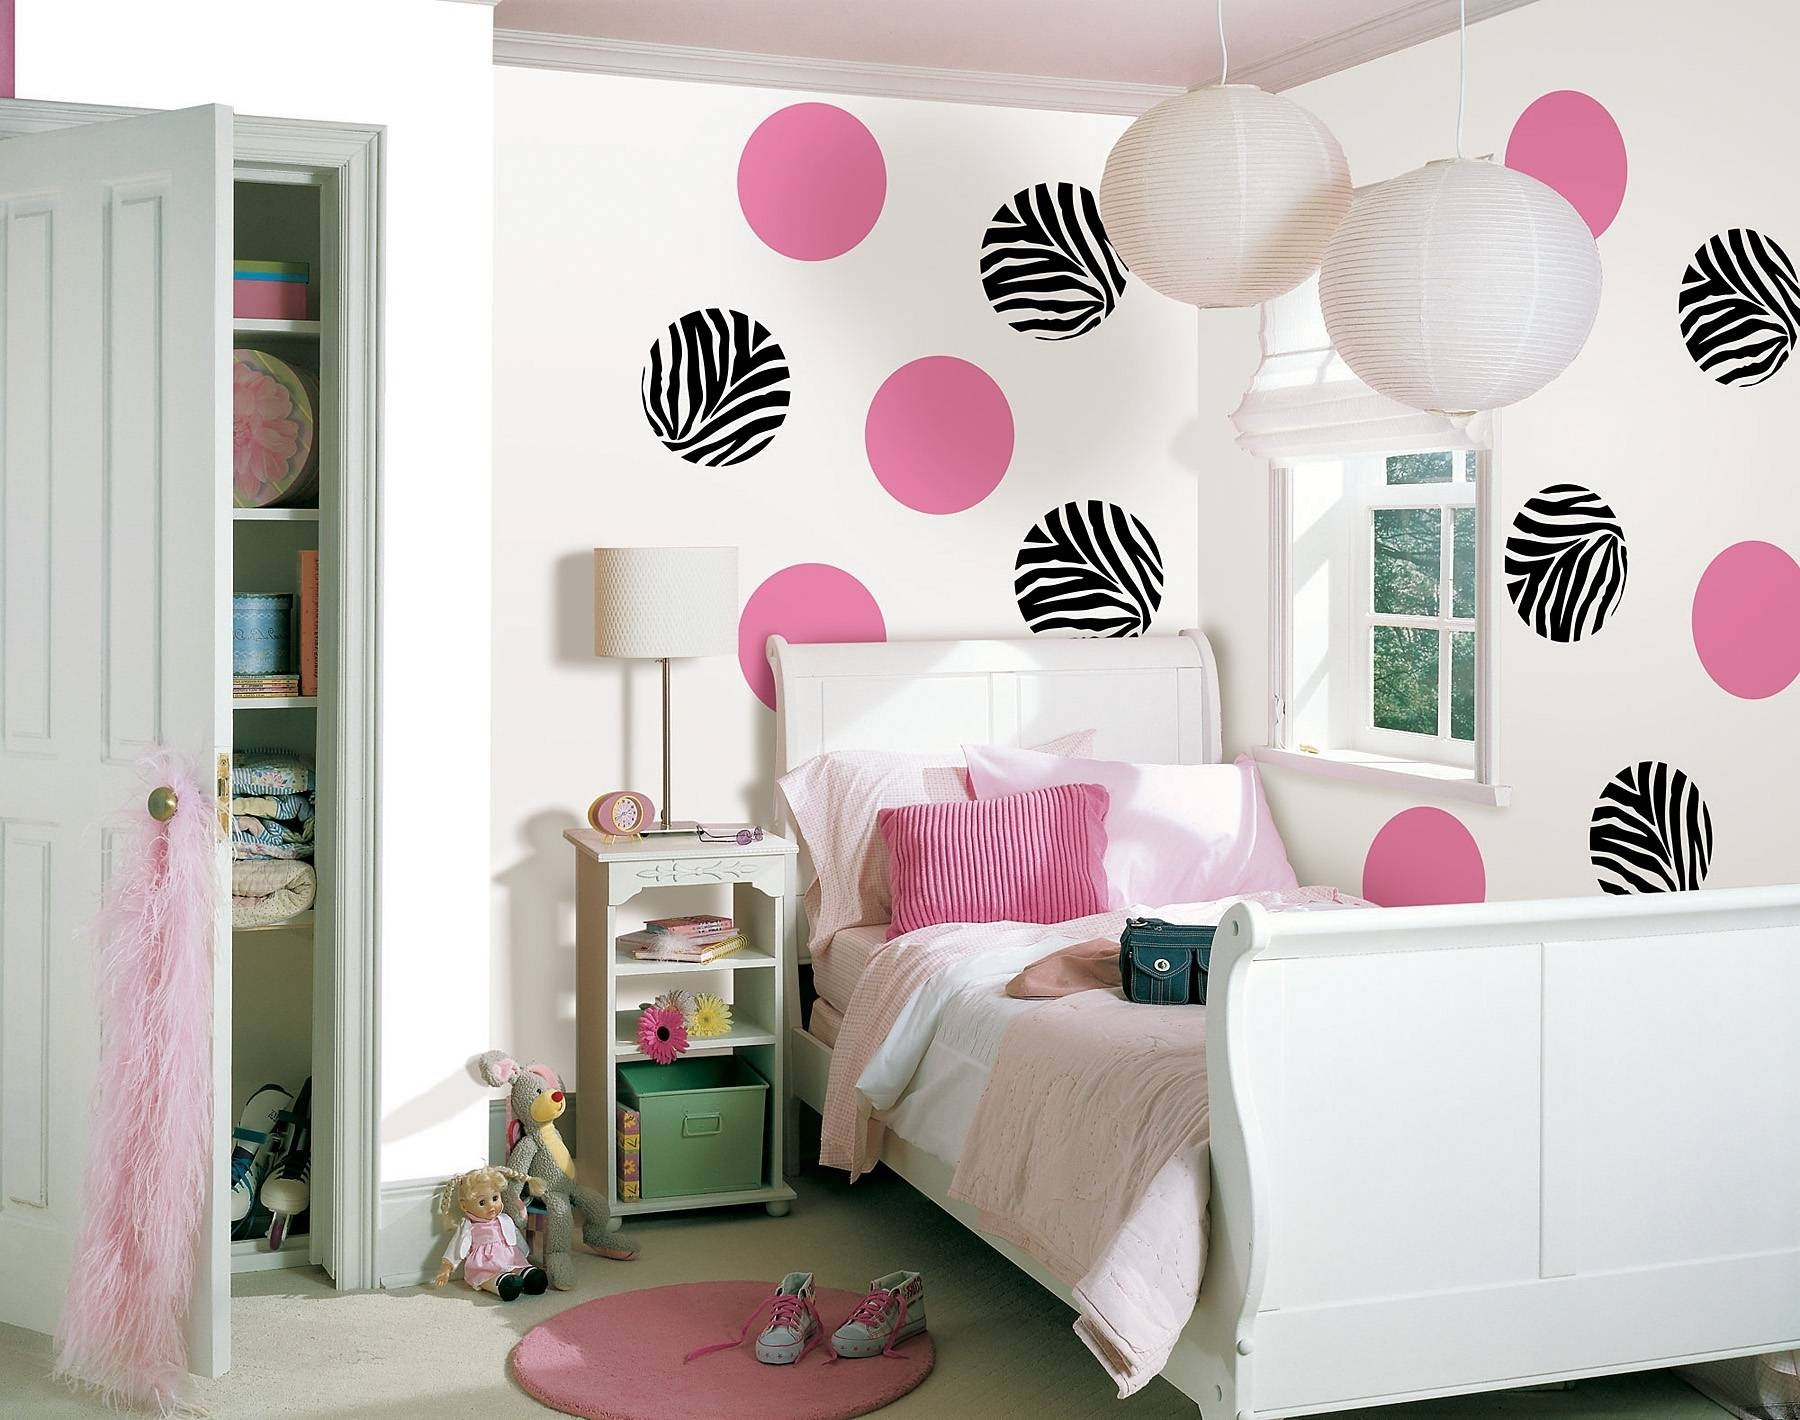 Teens Room : Diy Stenciled Wall Easy Diy Amp Teen Room Decor Pertaining To Most Popular Wall Art For Teenagers (View 15 of 25)